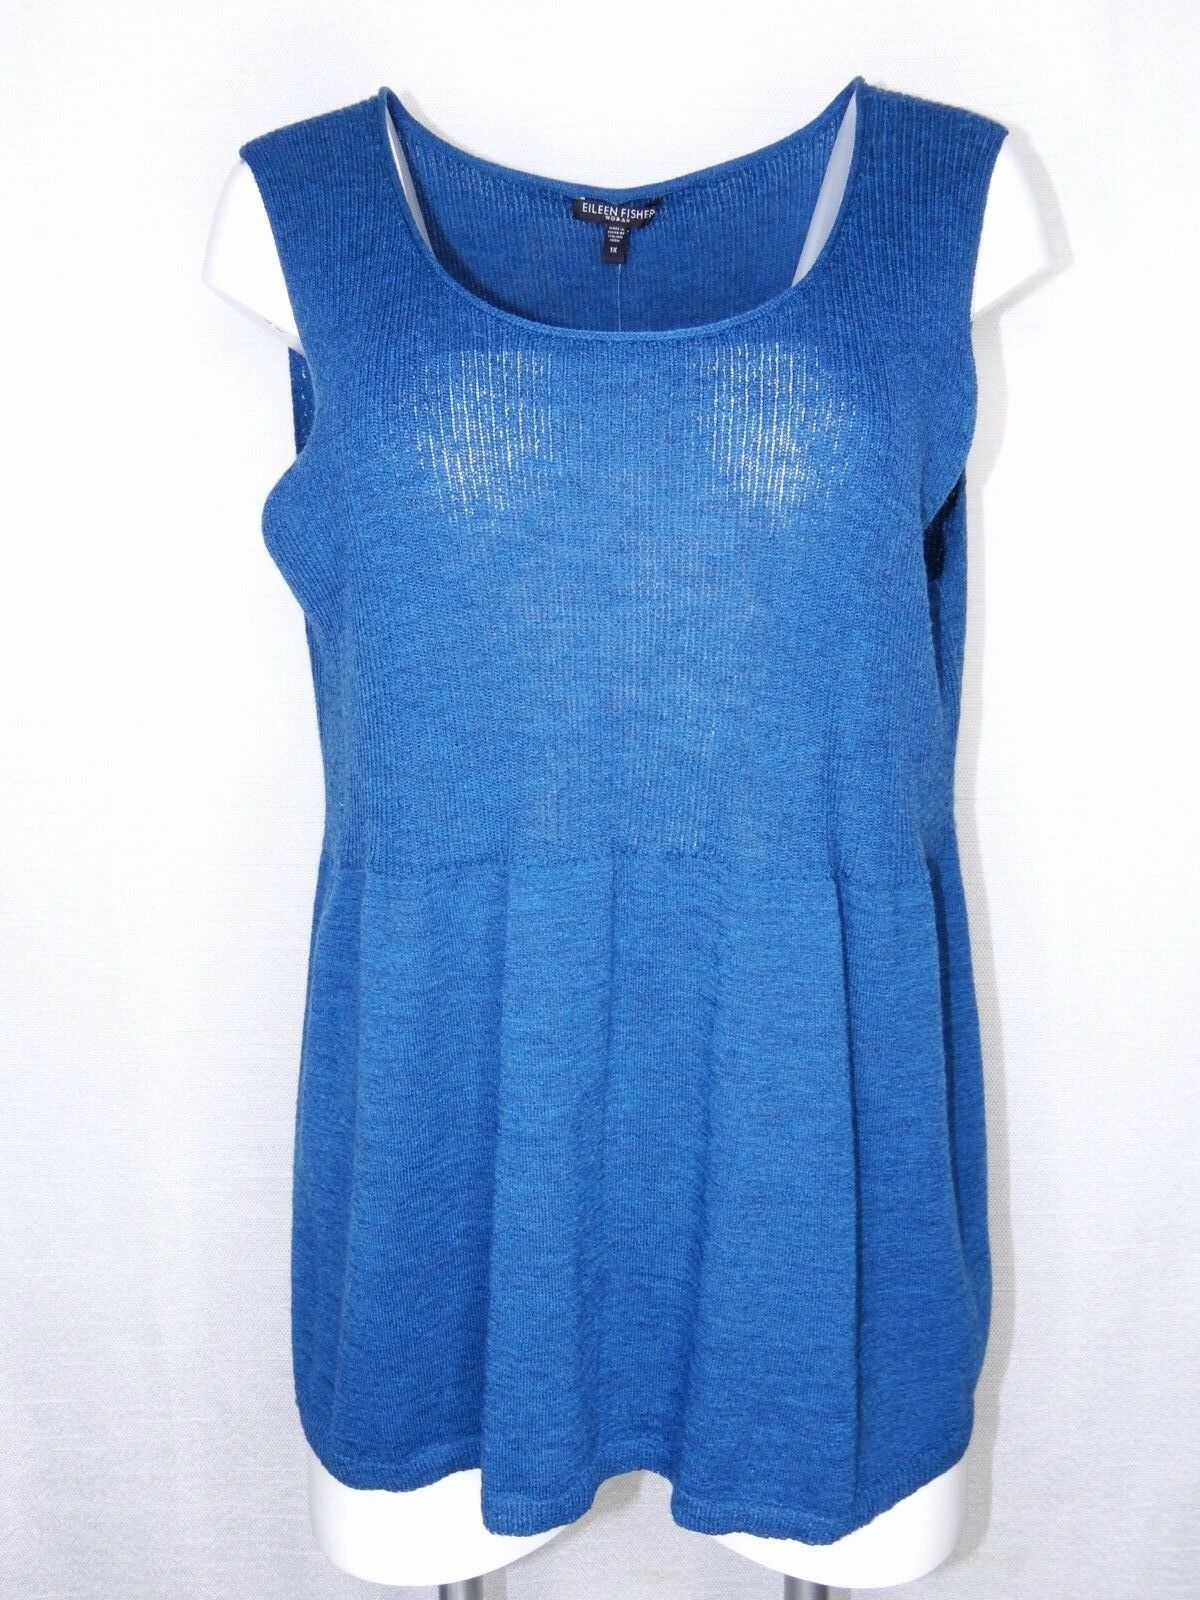 Eileen Fisher Woman 1X Plus Größe Sleeveless Top Teal Storm SCPNK Shell